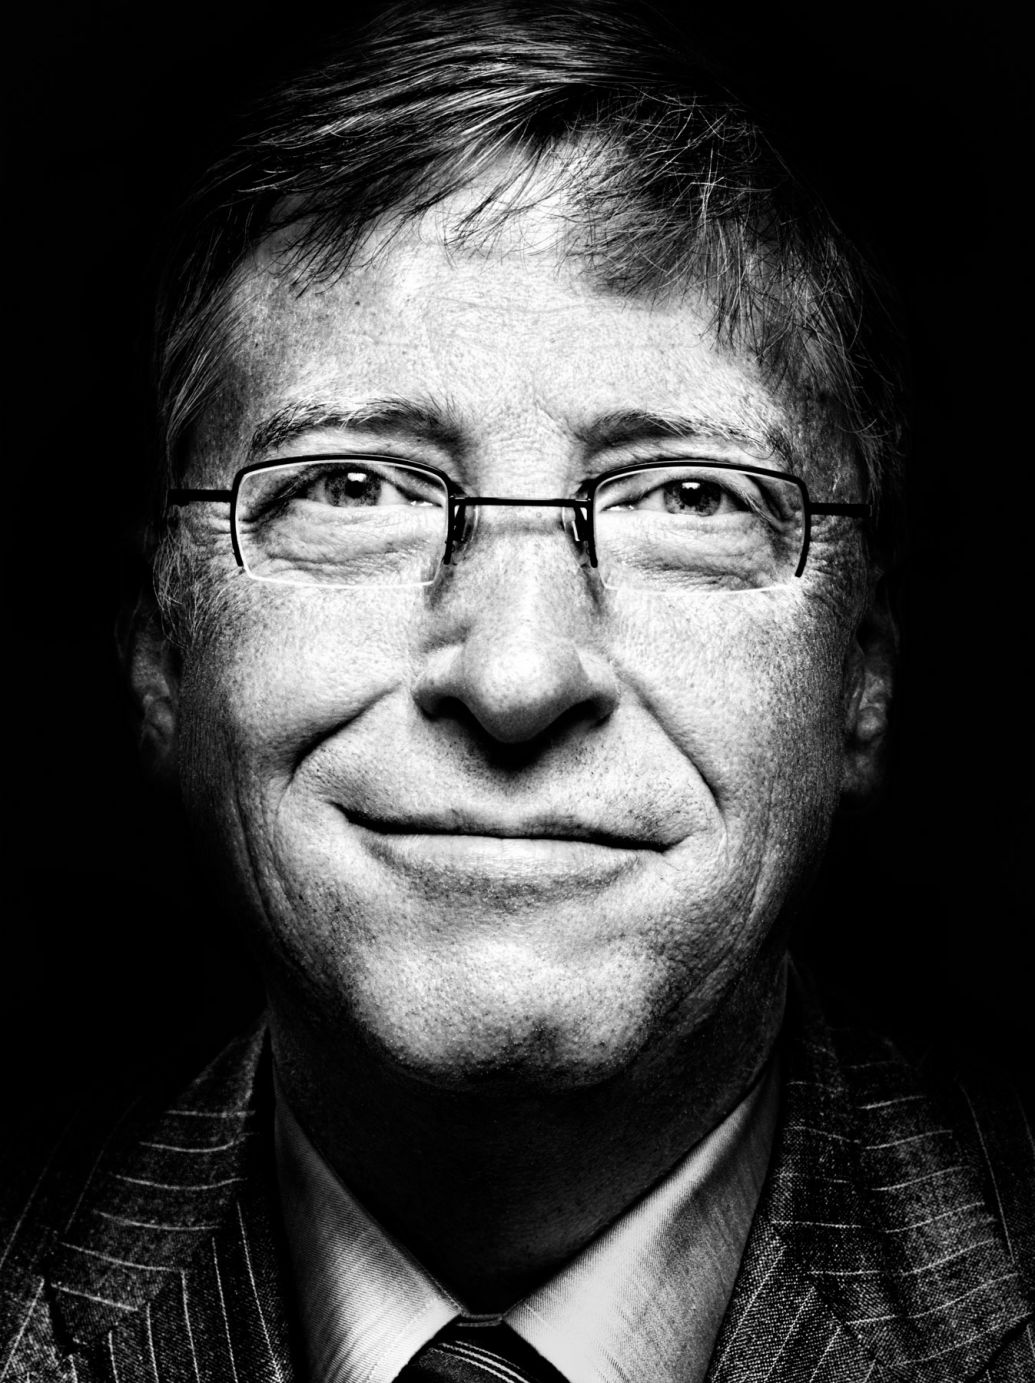 bill gates portrait photography